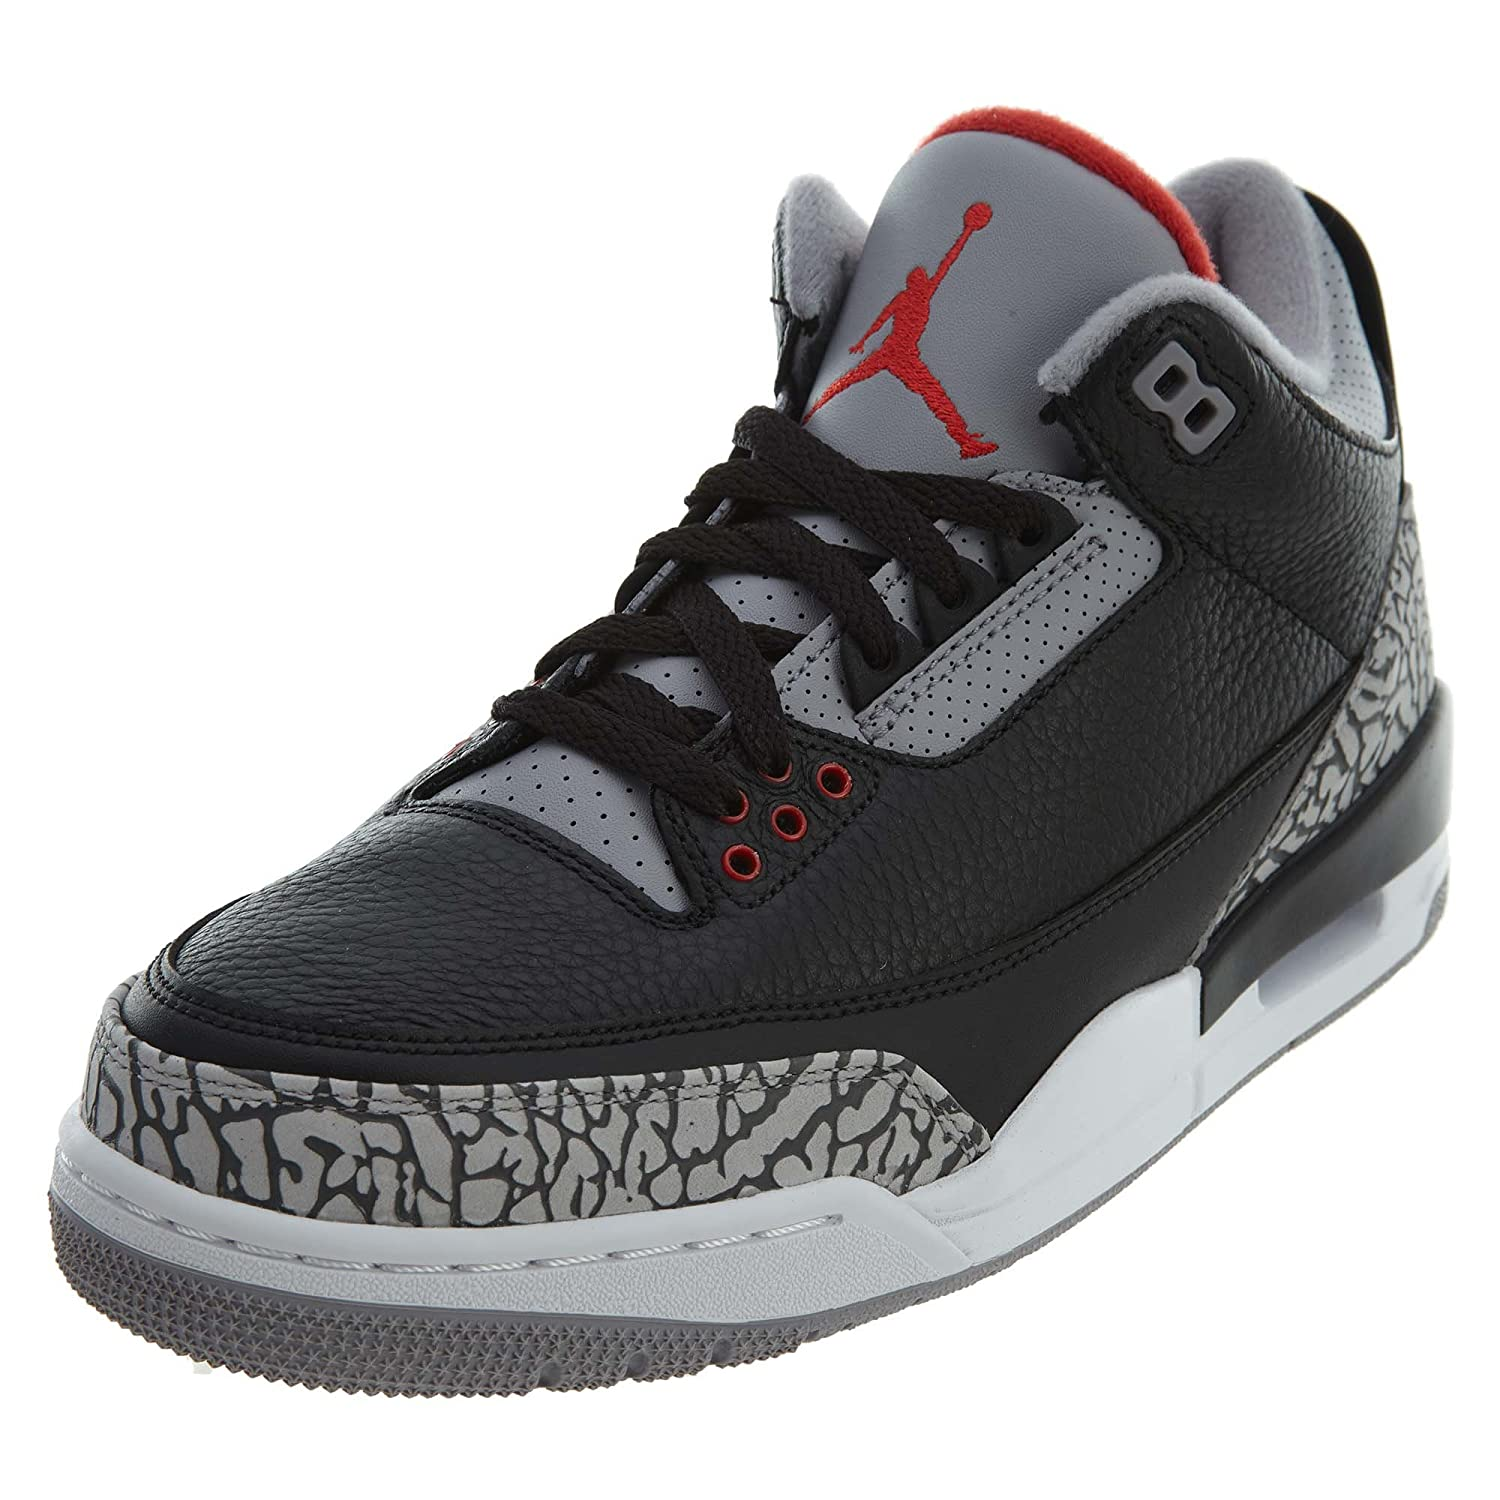 the best attitude eb16d 9dcfb Jordan Men's Air 3 Retro OG, BLACK/FIRE RED-CEMENT GREY, 11 M US